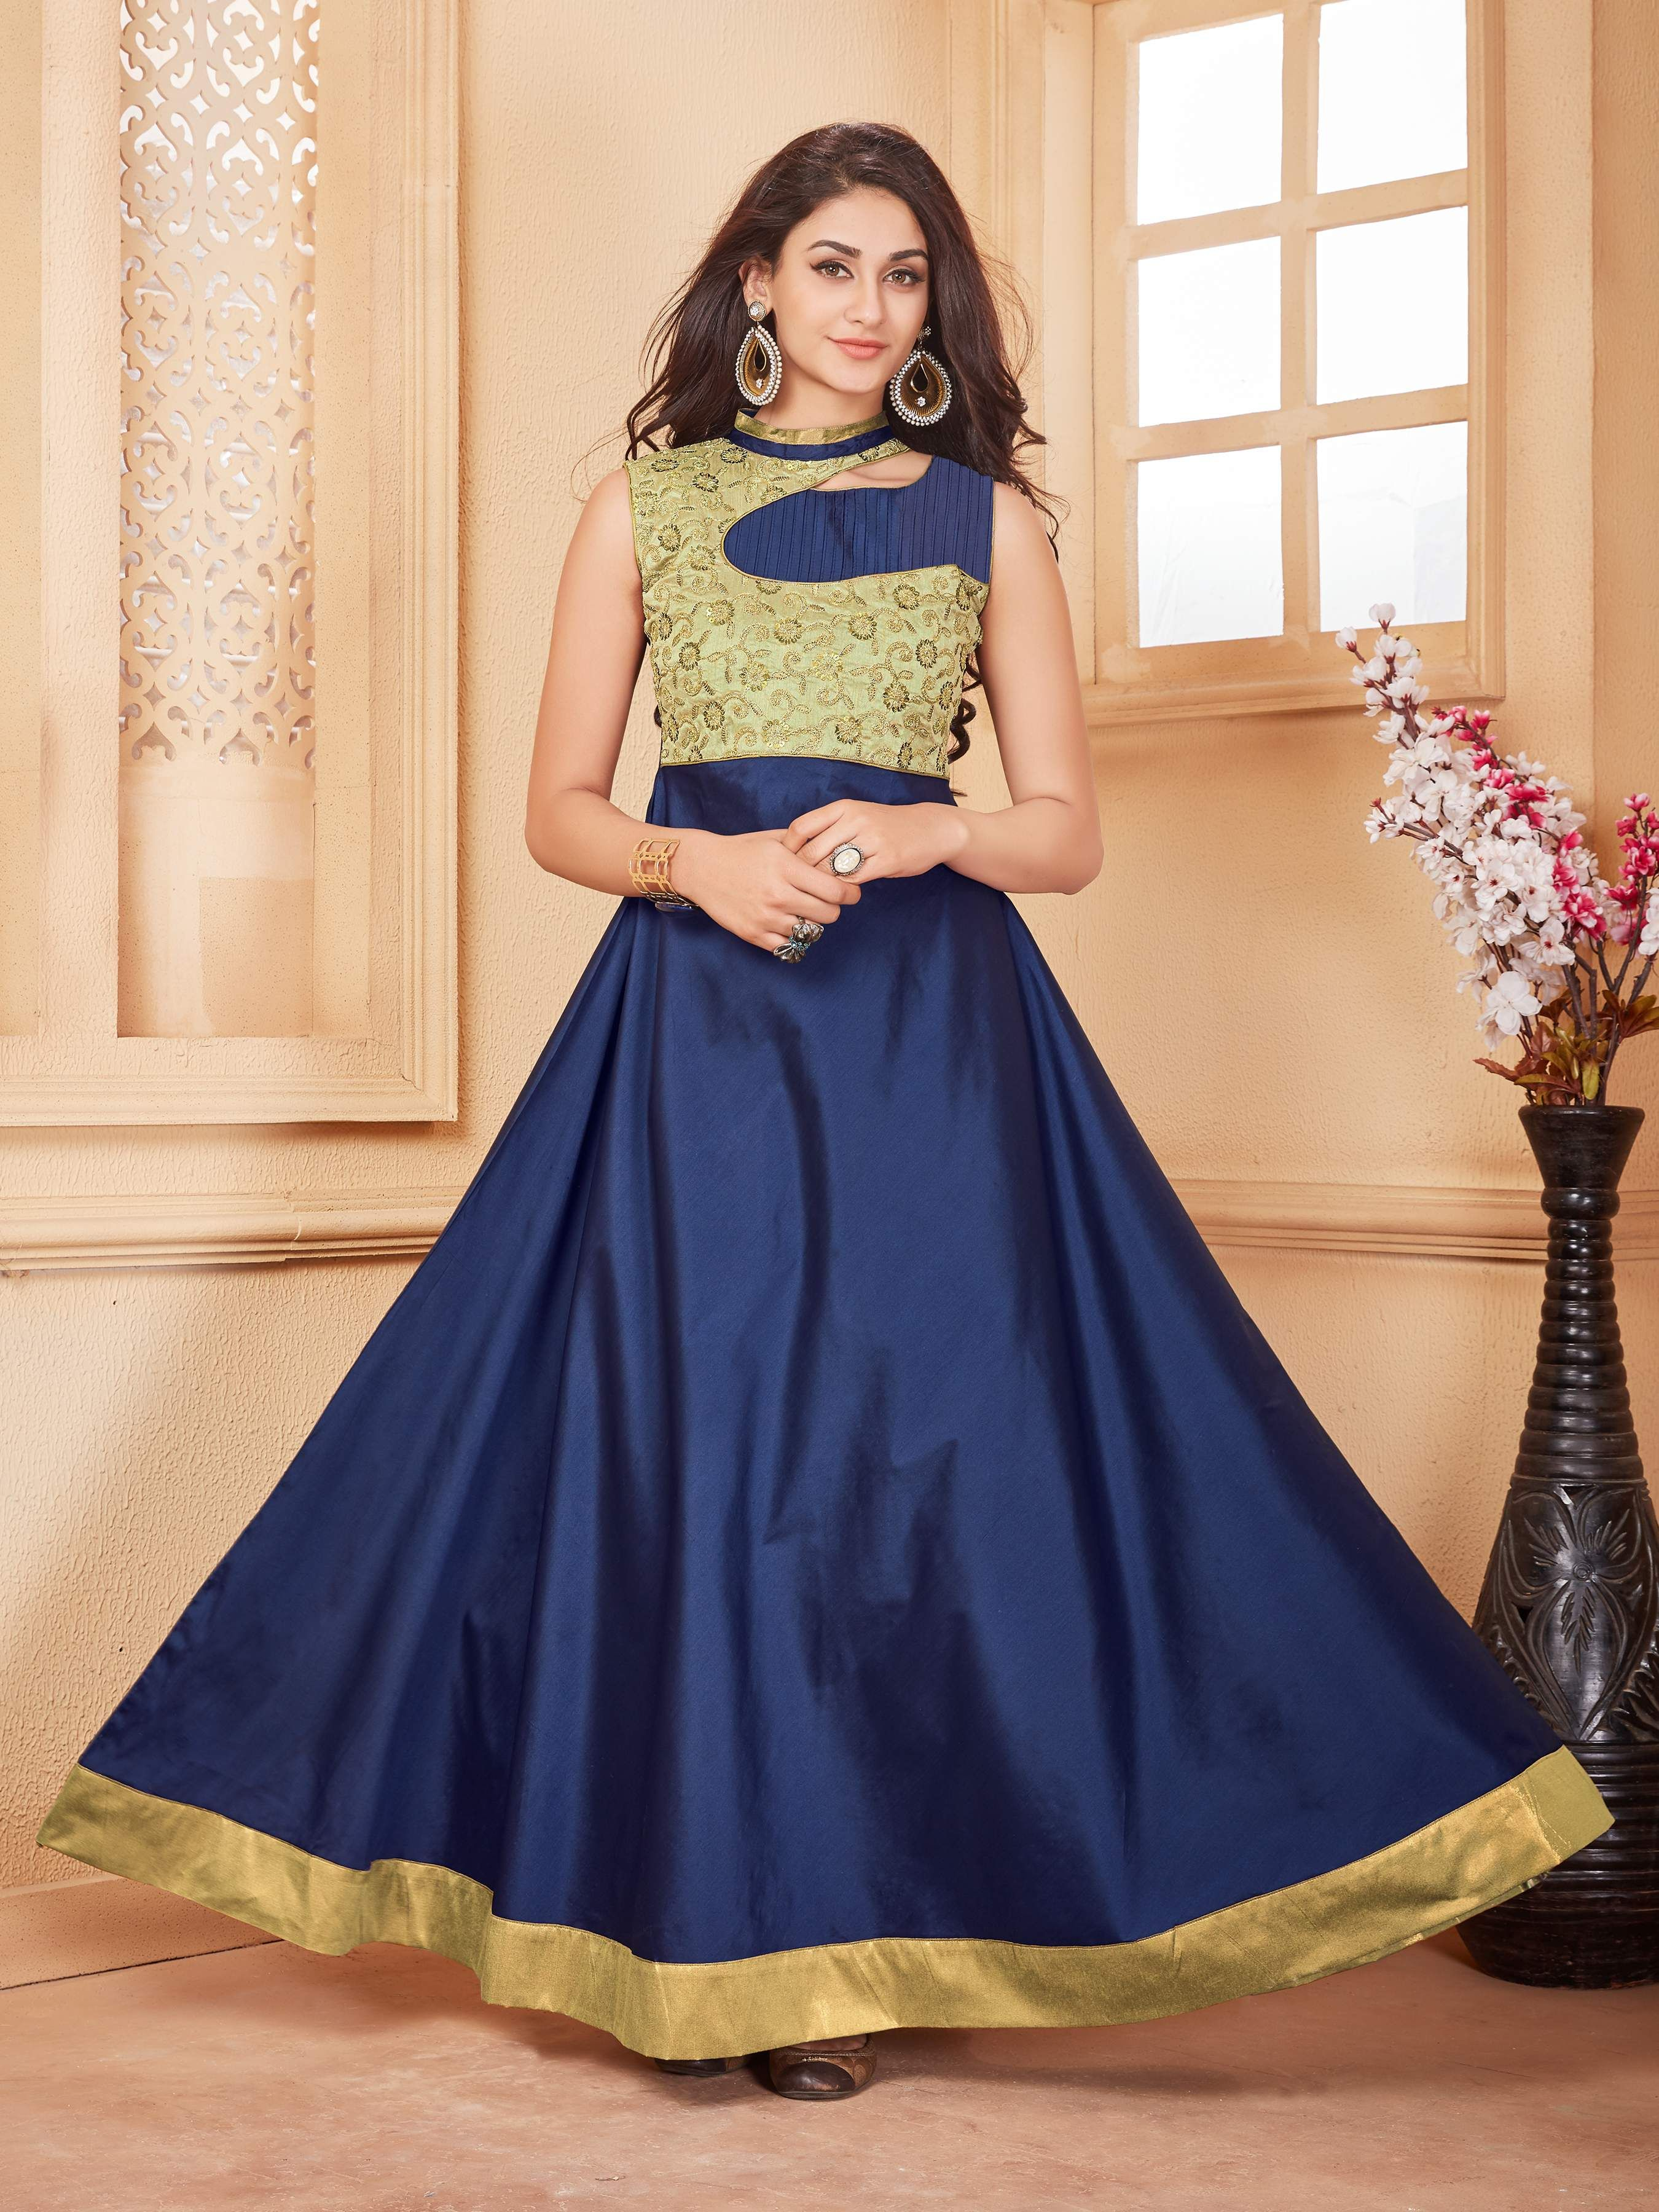 b9312d790ed Buy latest designs of party wear gowns online at best prices. Check out the  variety of Partywear Gowns at Mirraw.com. ✯ Free Shipping ✯ Fastest  Delivery ...